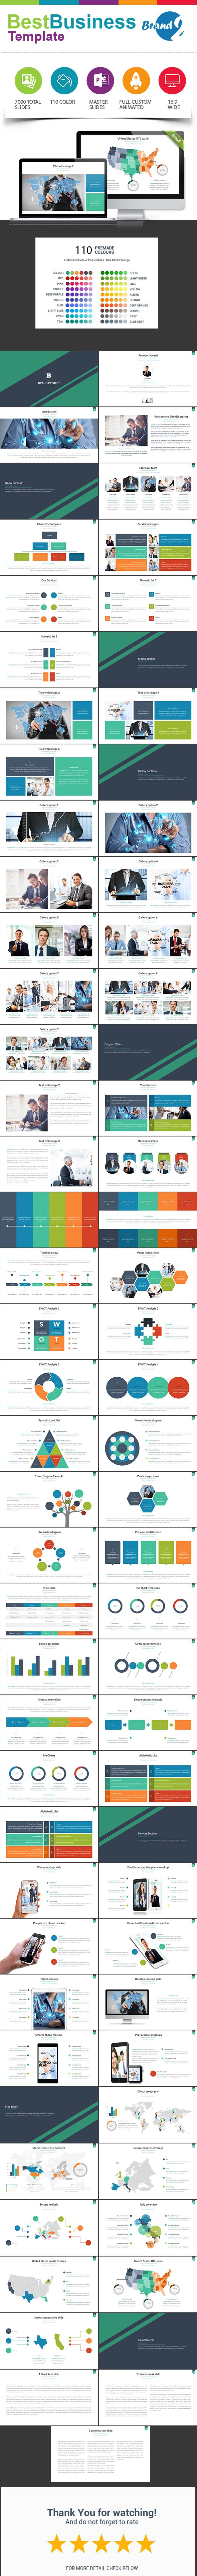 Best Business PowerPoint Template #design #slides Download: http://graphicriver.net/item/best-business-template-2/13840861?ref=ksioks